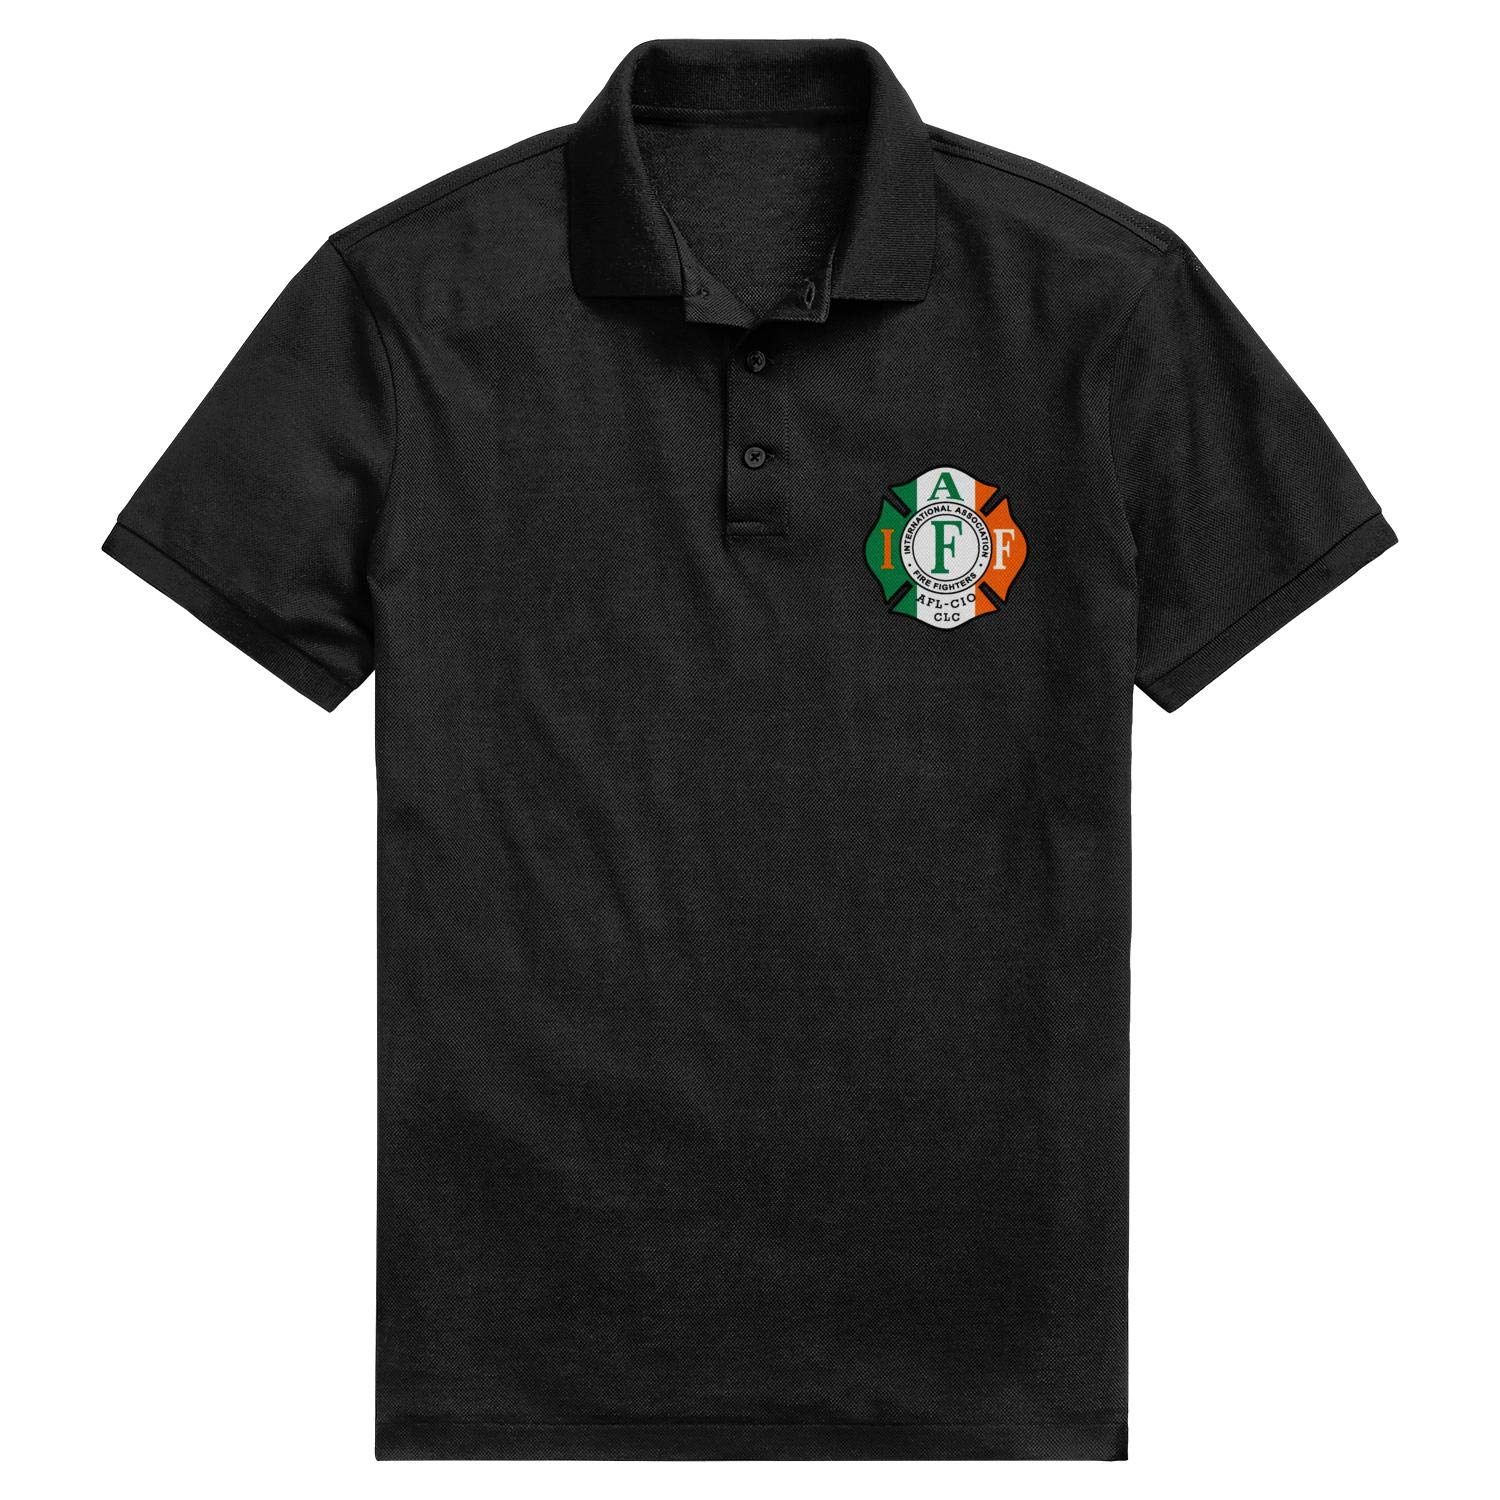 DXQIANG IAFF American Flag Pattern Printed Funny Polo Shirt Party Cotton Shirt Top for Mens